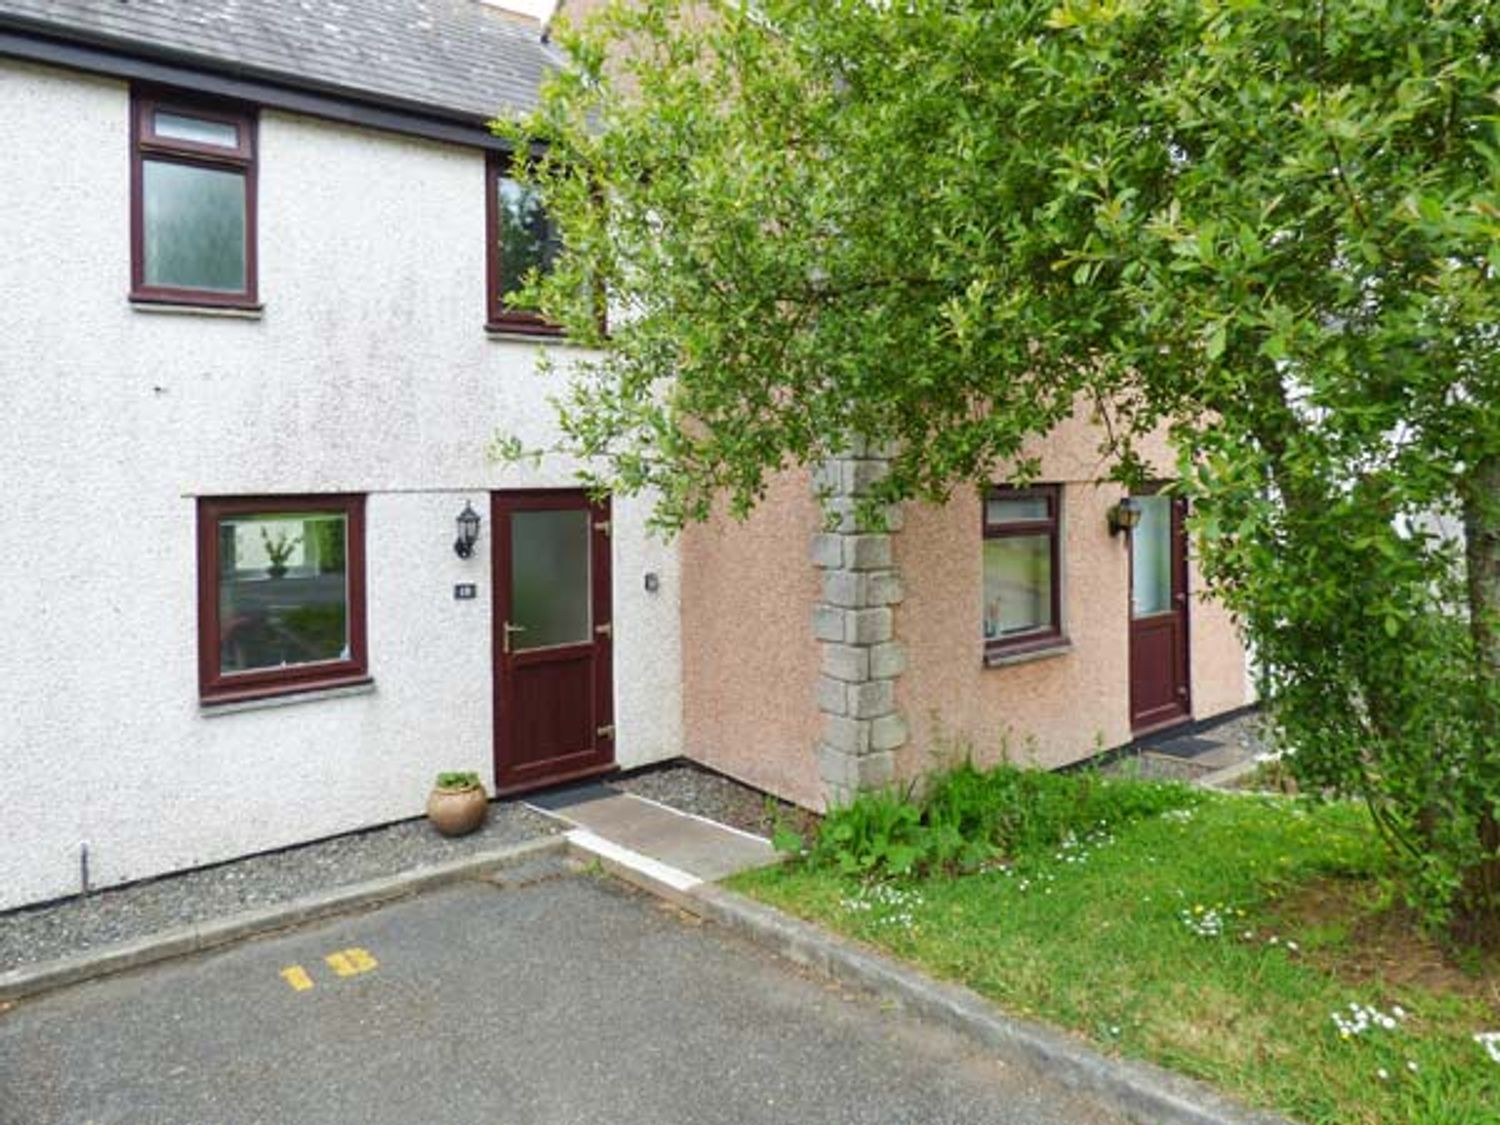 18 Old Court - Cornwall - 939306 - photo 1